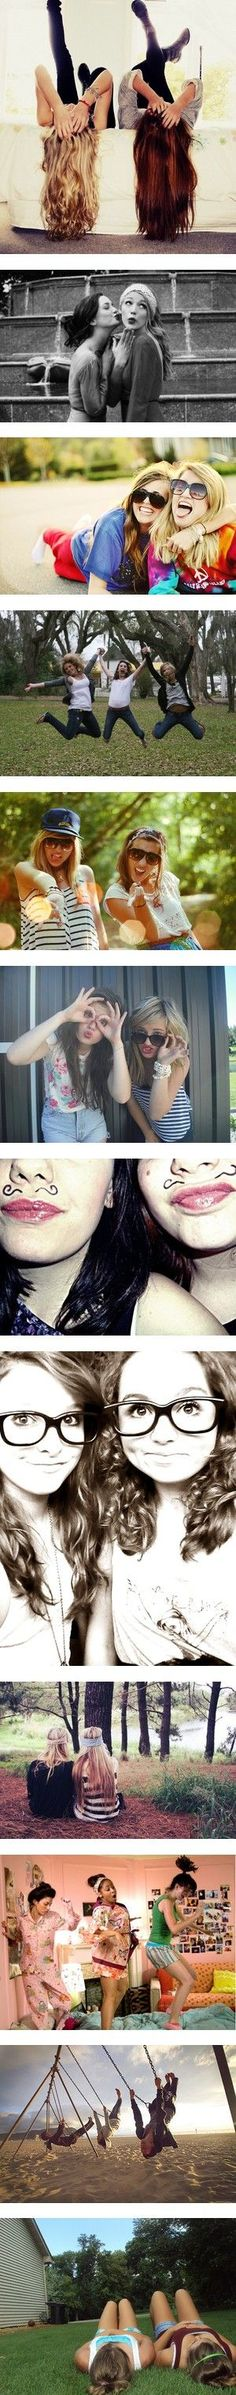 """""""pics to recreate with friends(:"""" by summerlove-sarah ❤ liked on Polyvore"""